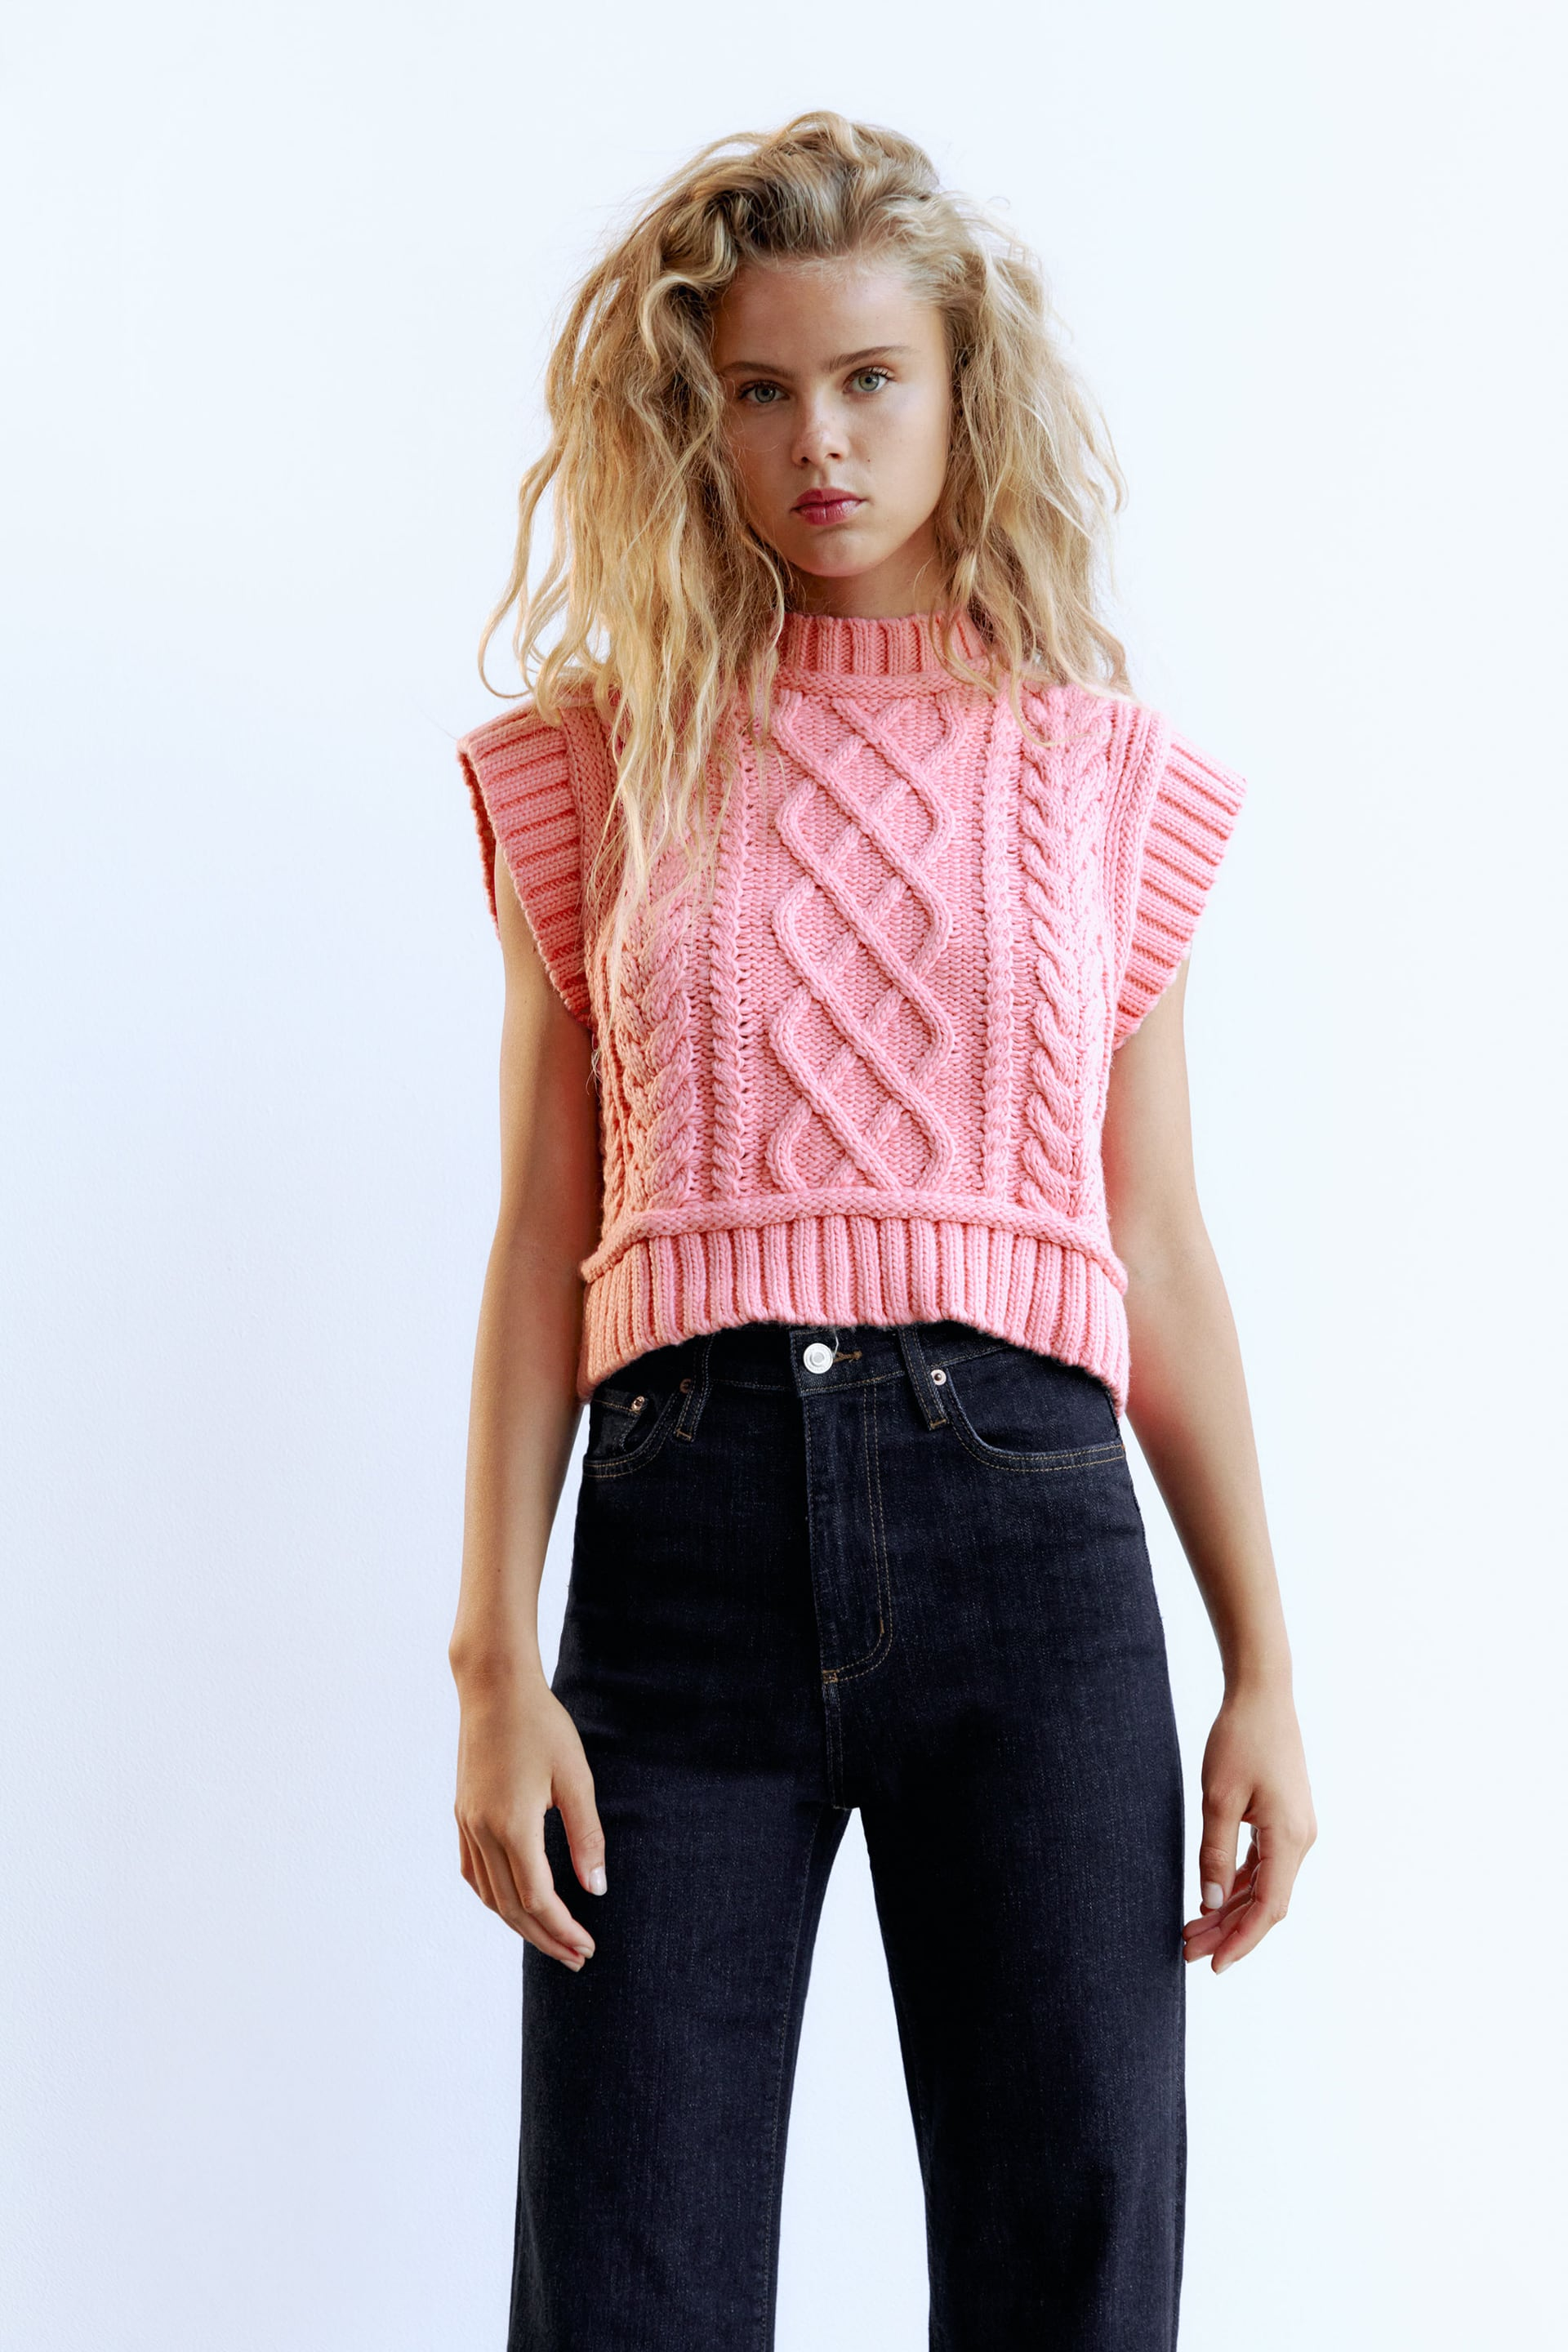 Pink Cable-Knit Vest – Zara - £25.99